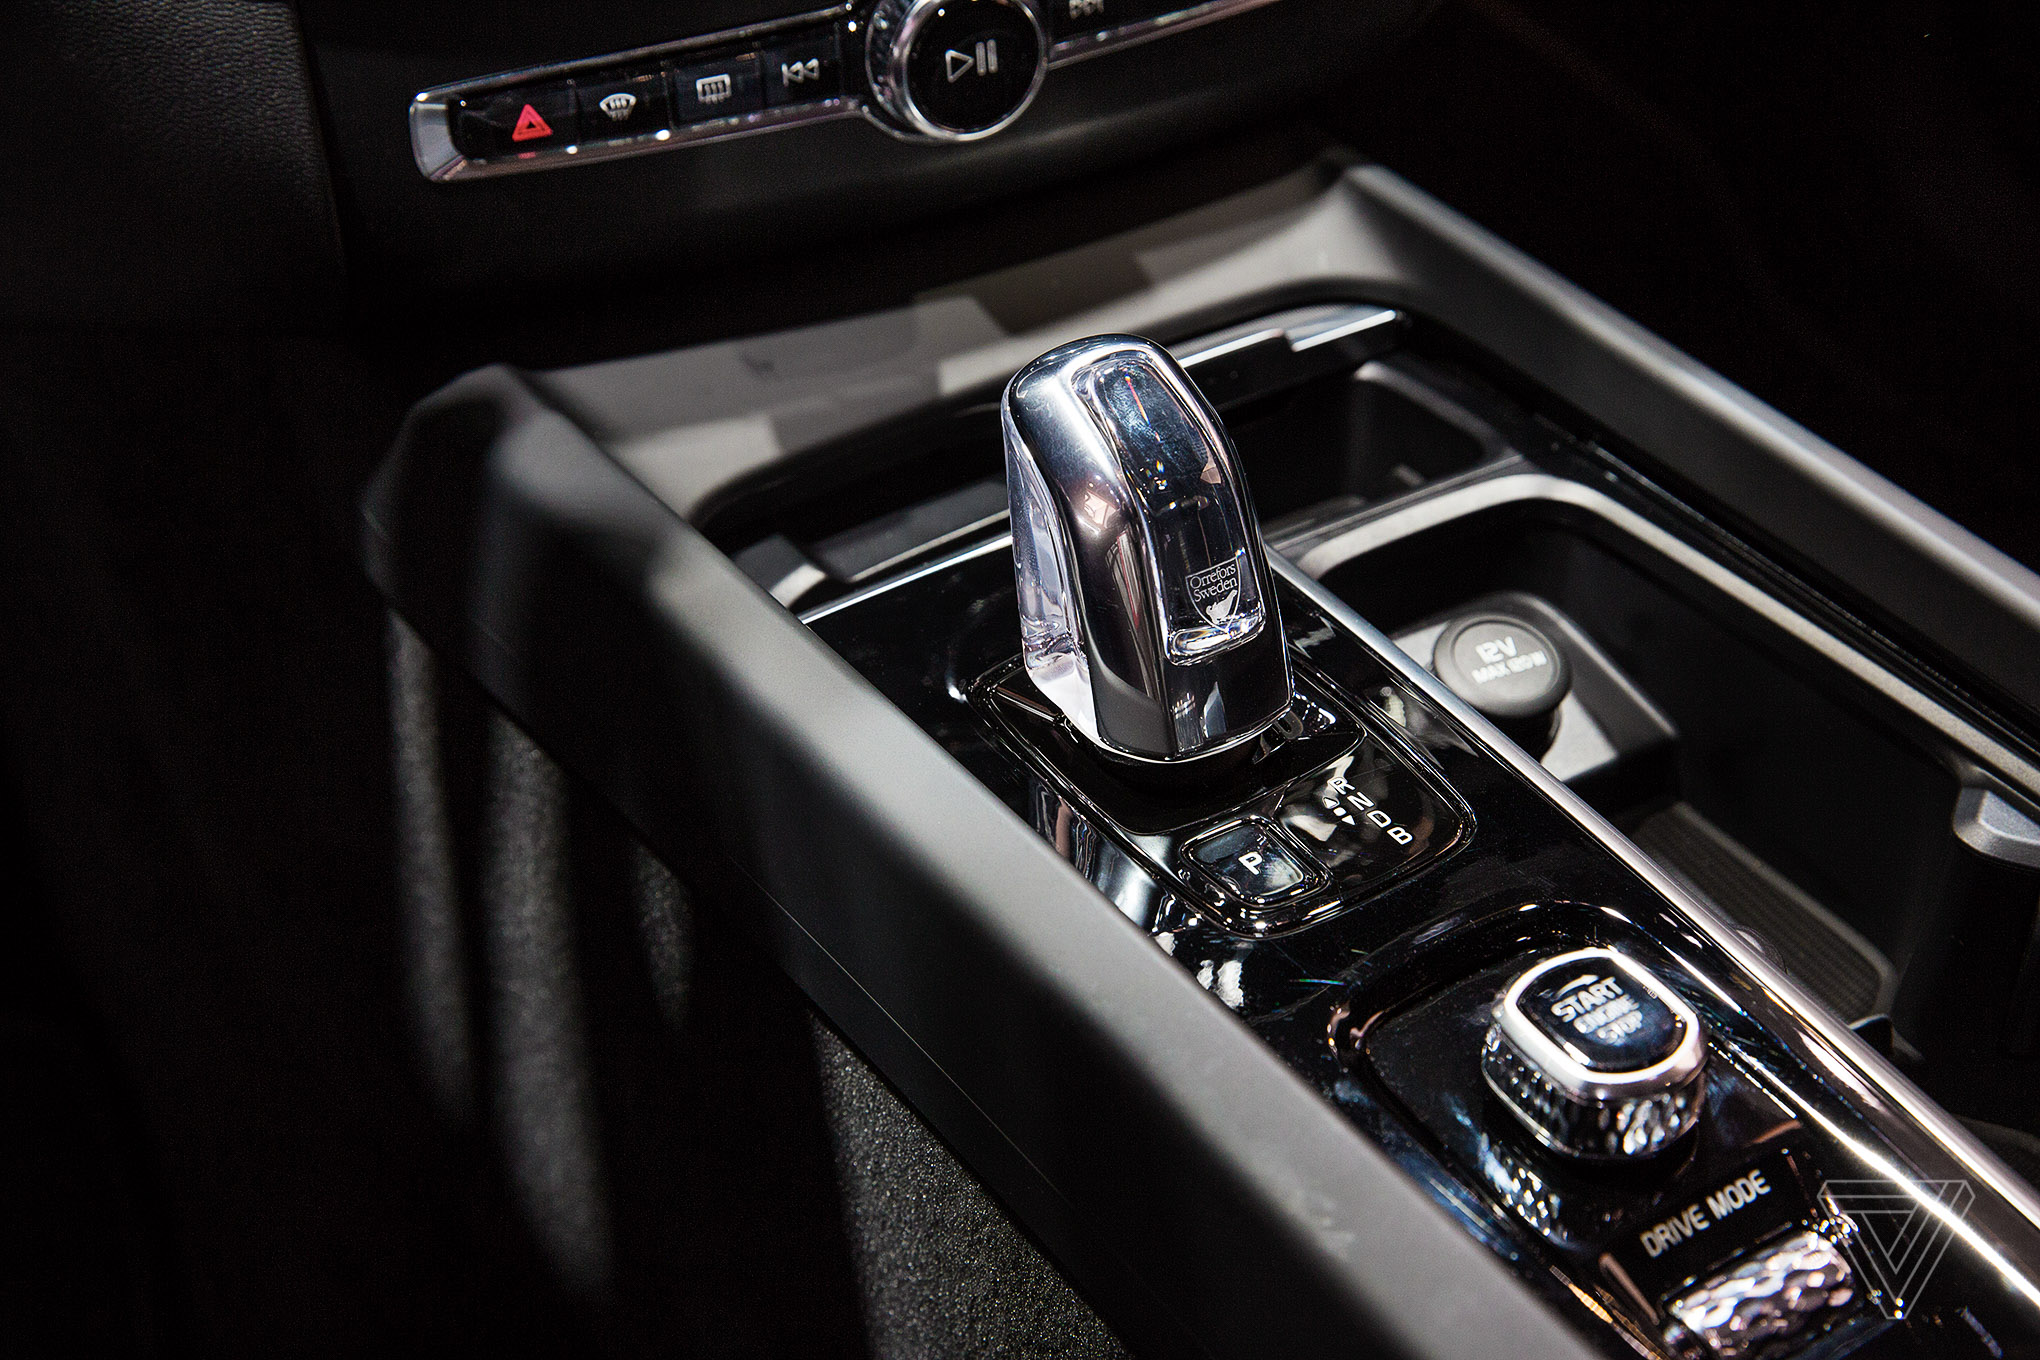 Here Are All The Wacky Gear Shifters From The New York Auto Show The Verge